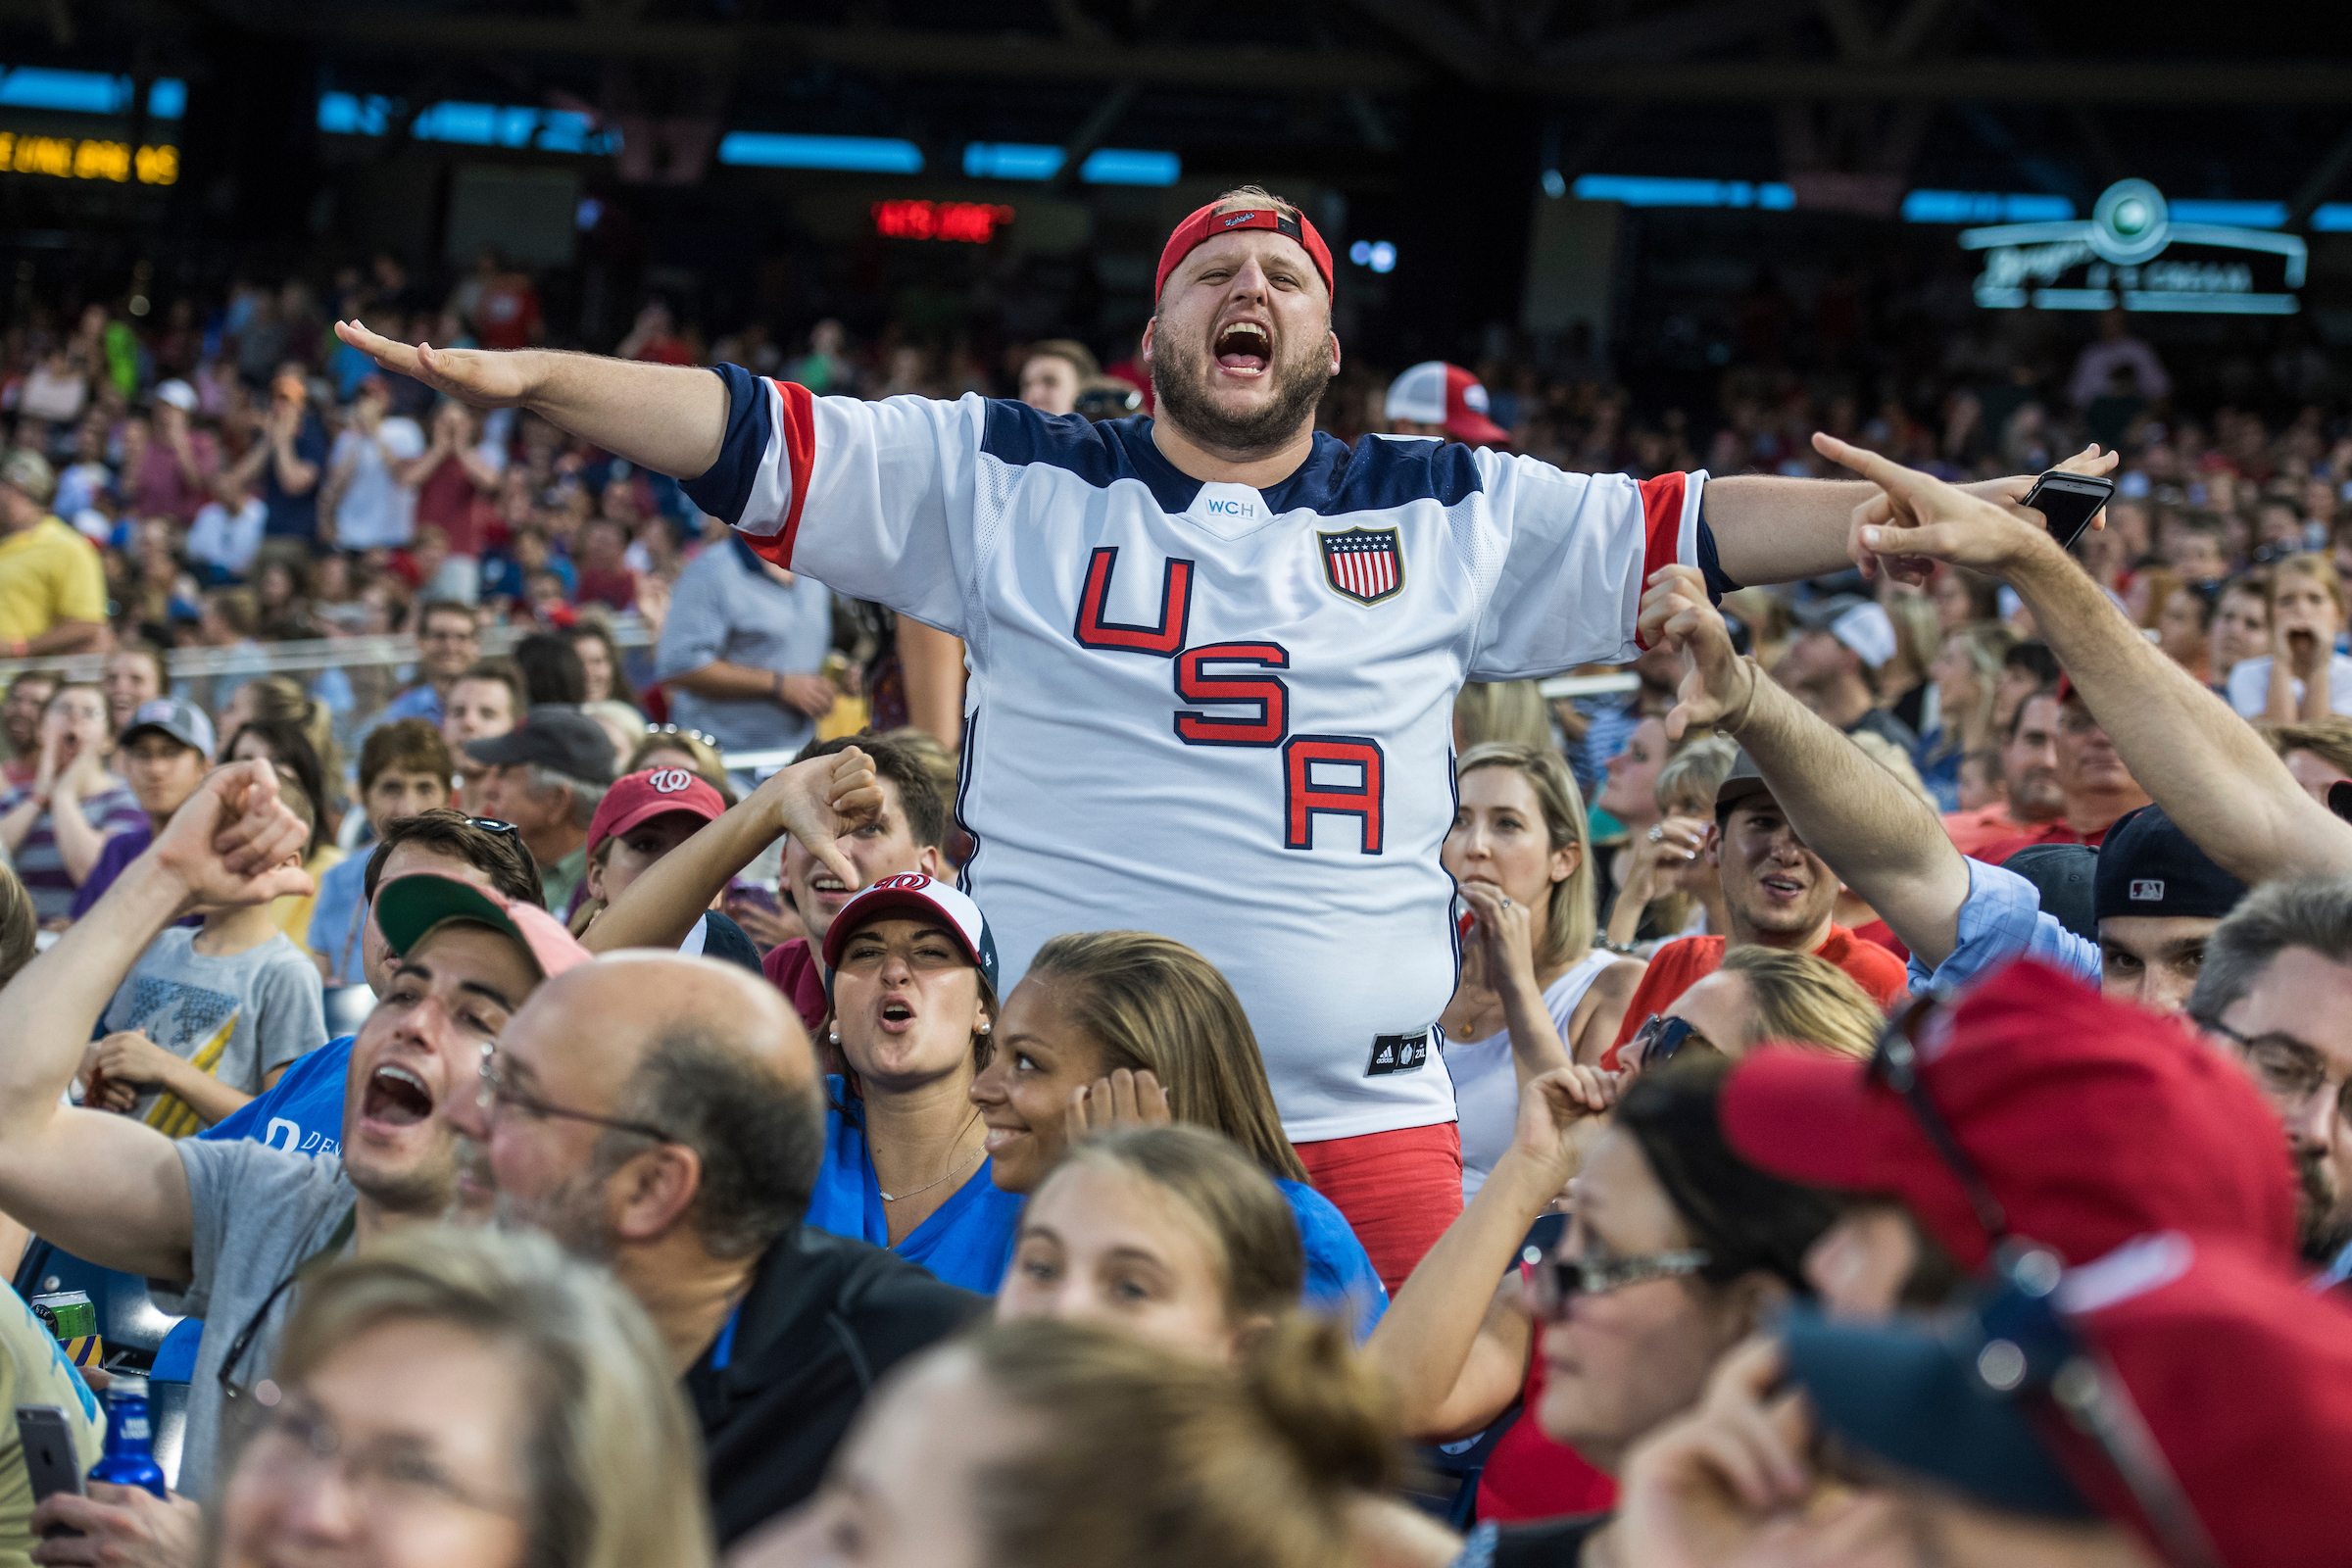 Republicans fan watch the 56th Congressional Baseball Game at Nationals Park on June 15, 2017. (Photo By Tom Williams/CQ Roll Call)